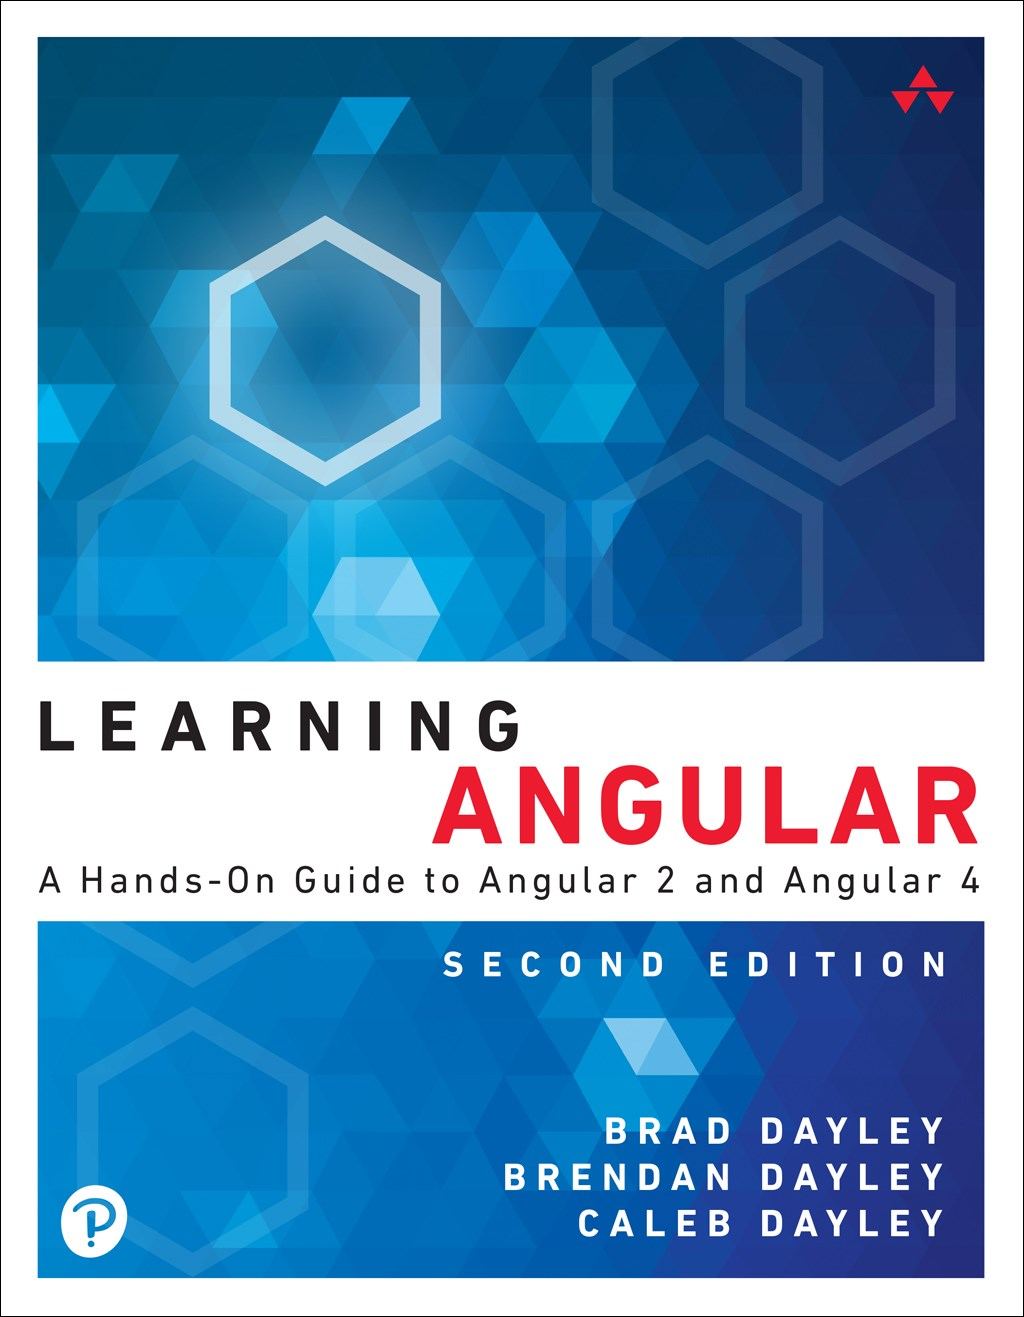 Learning Angular: A Hands-On Guide to Angular 2 and Angular 4, 2nd Edition